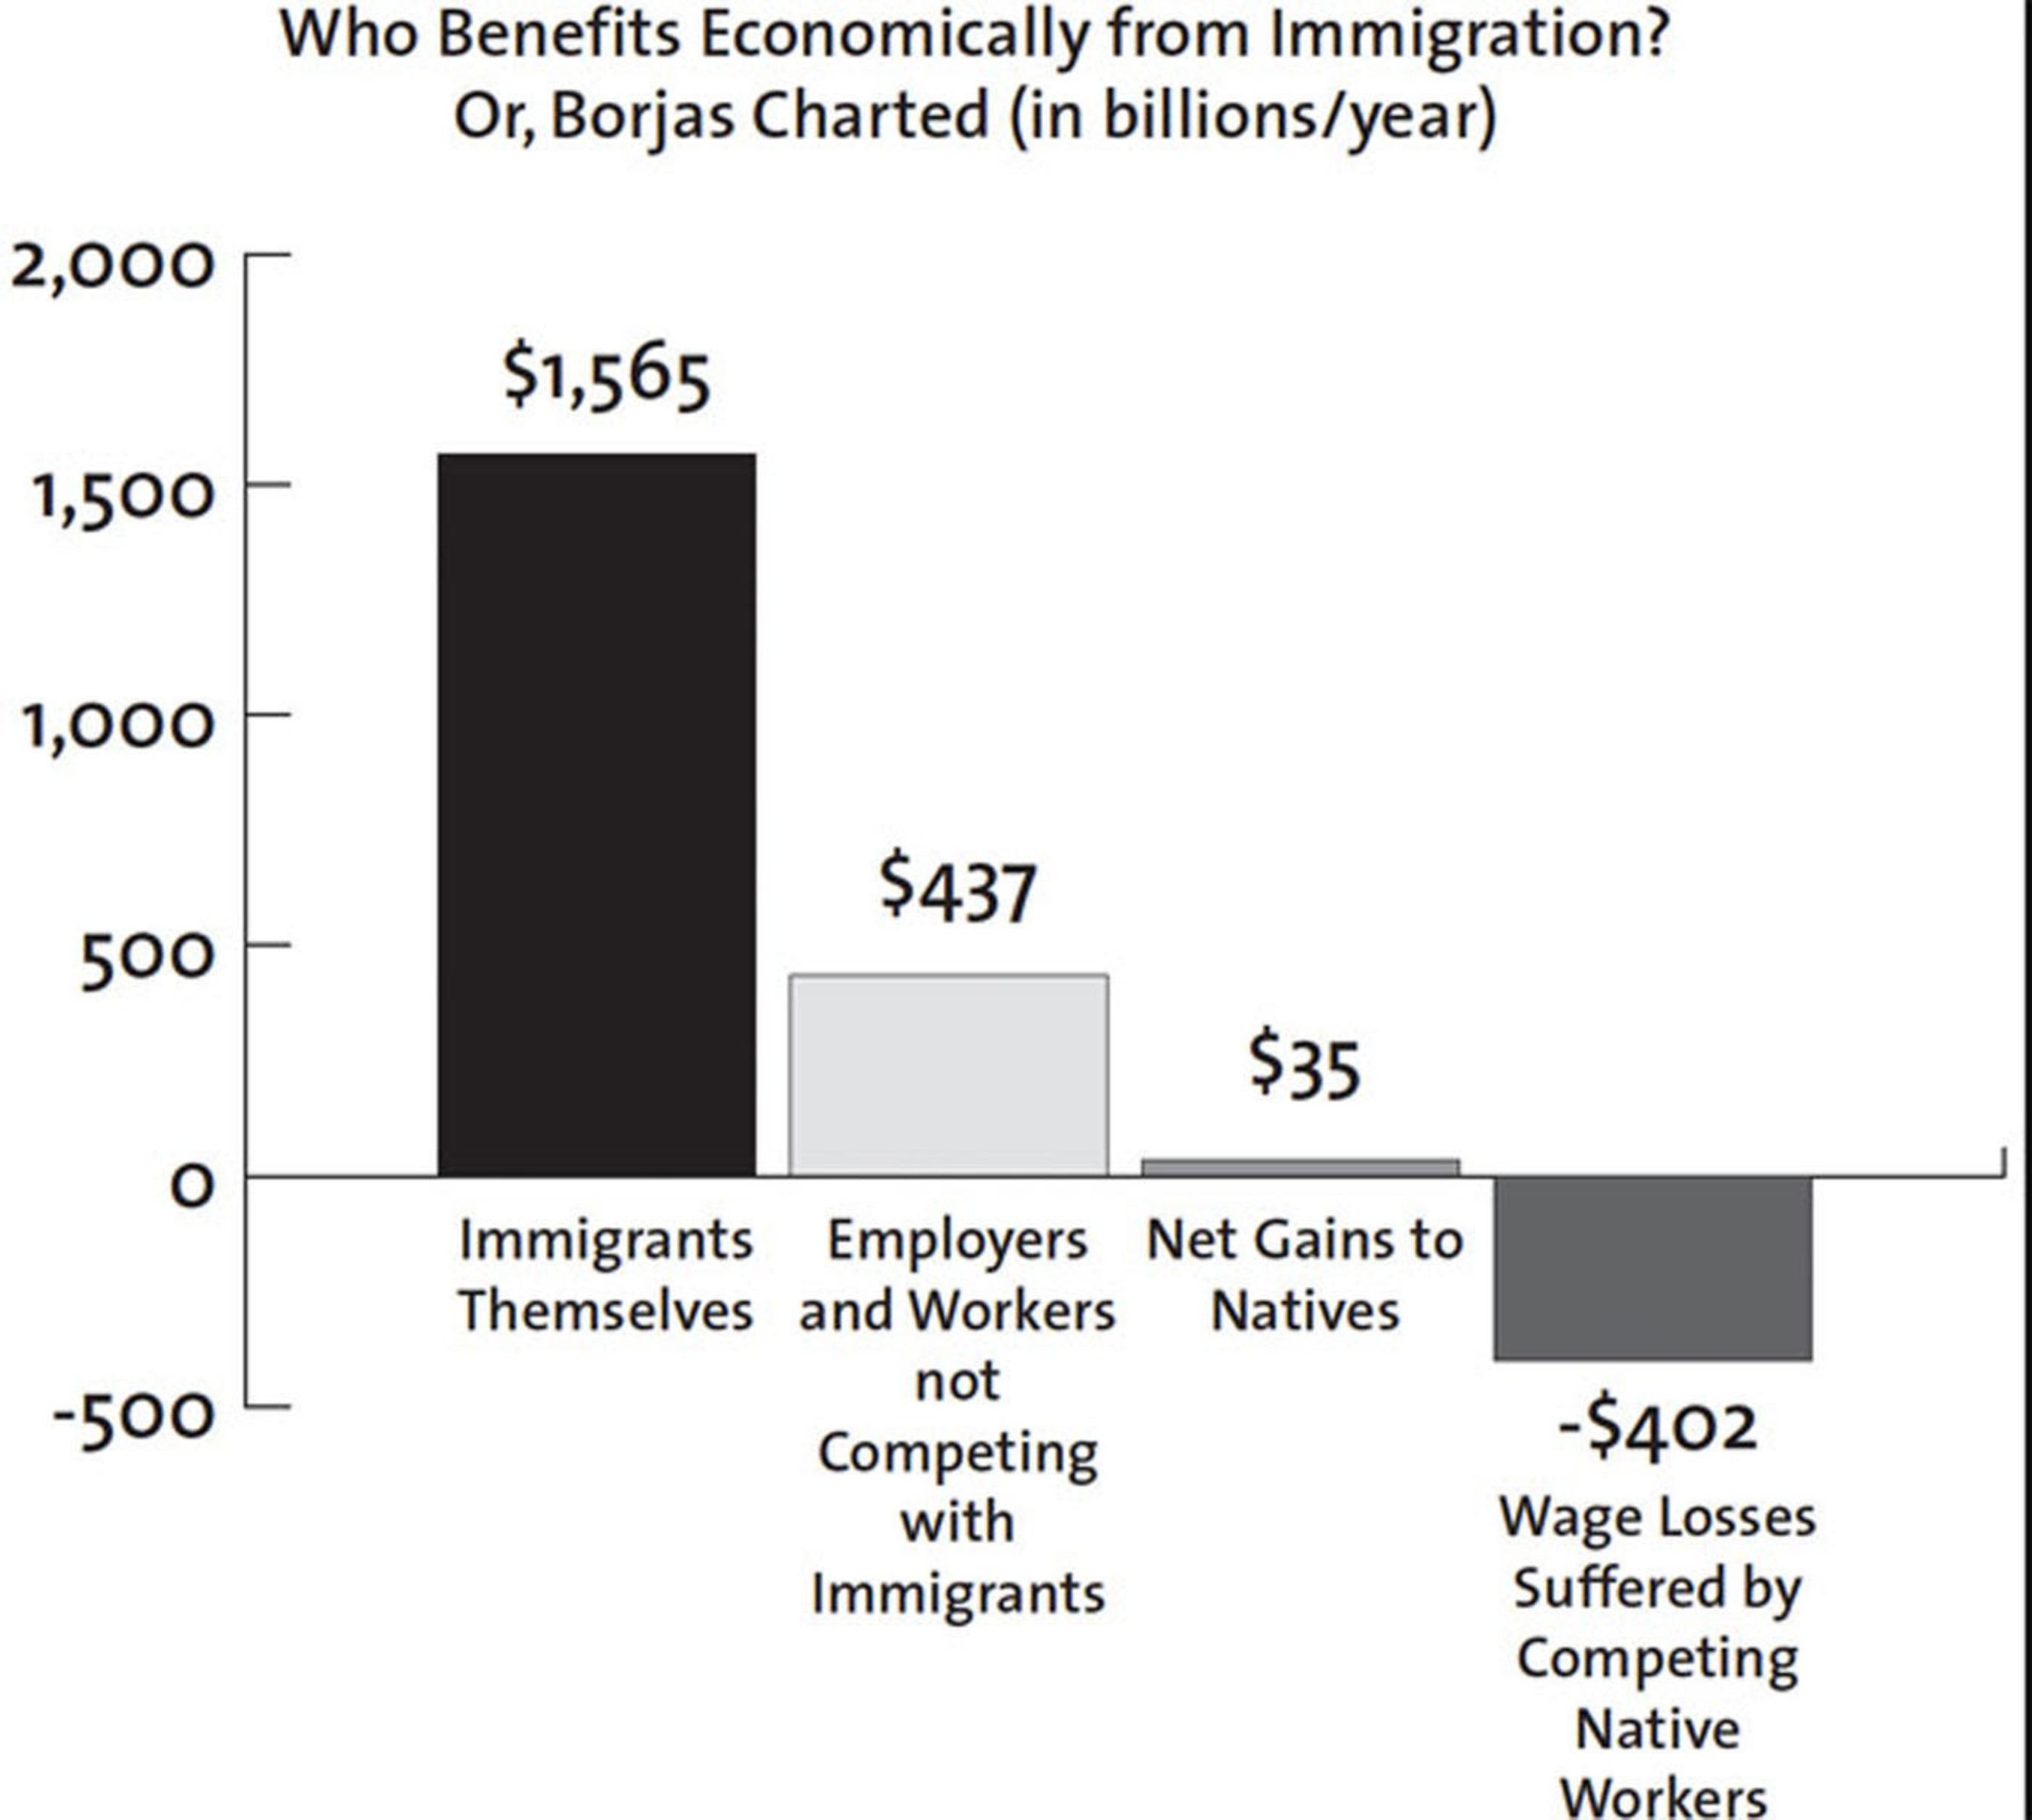 Winners & Losers from Immigration